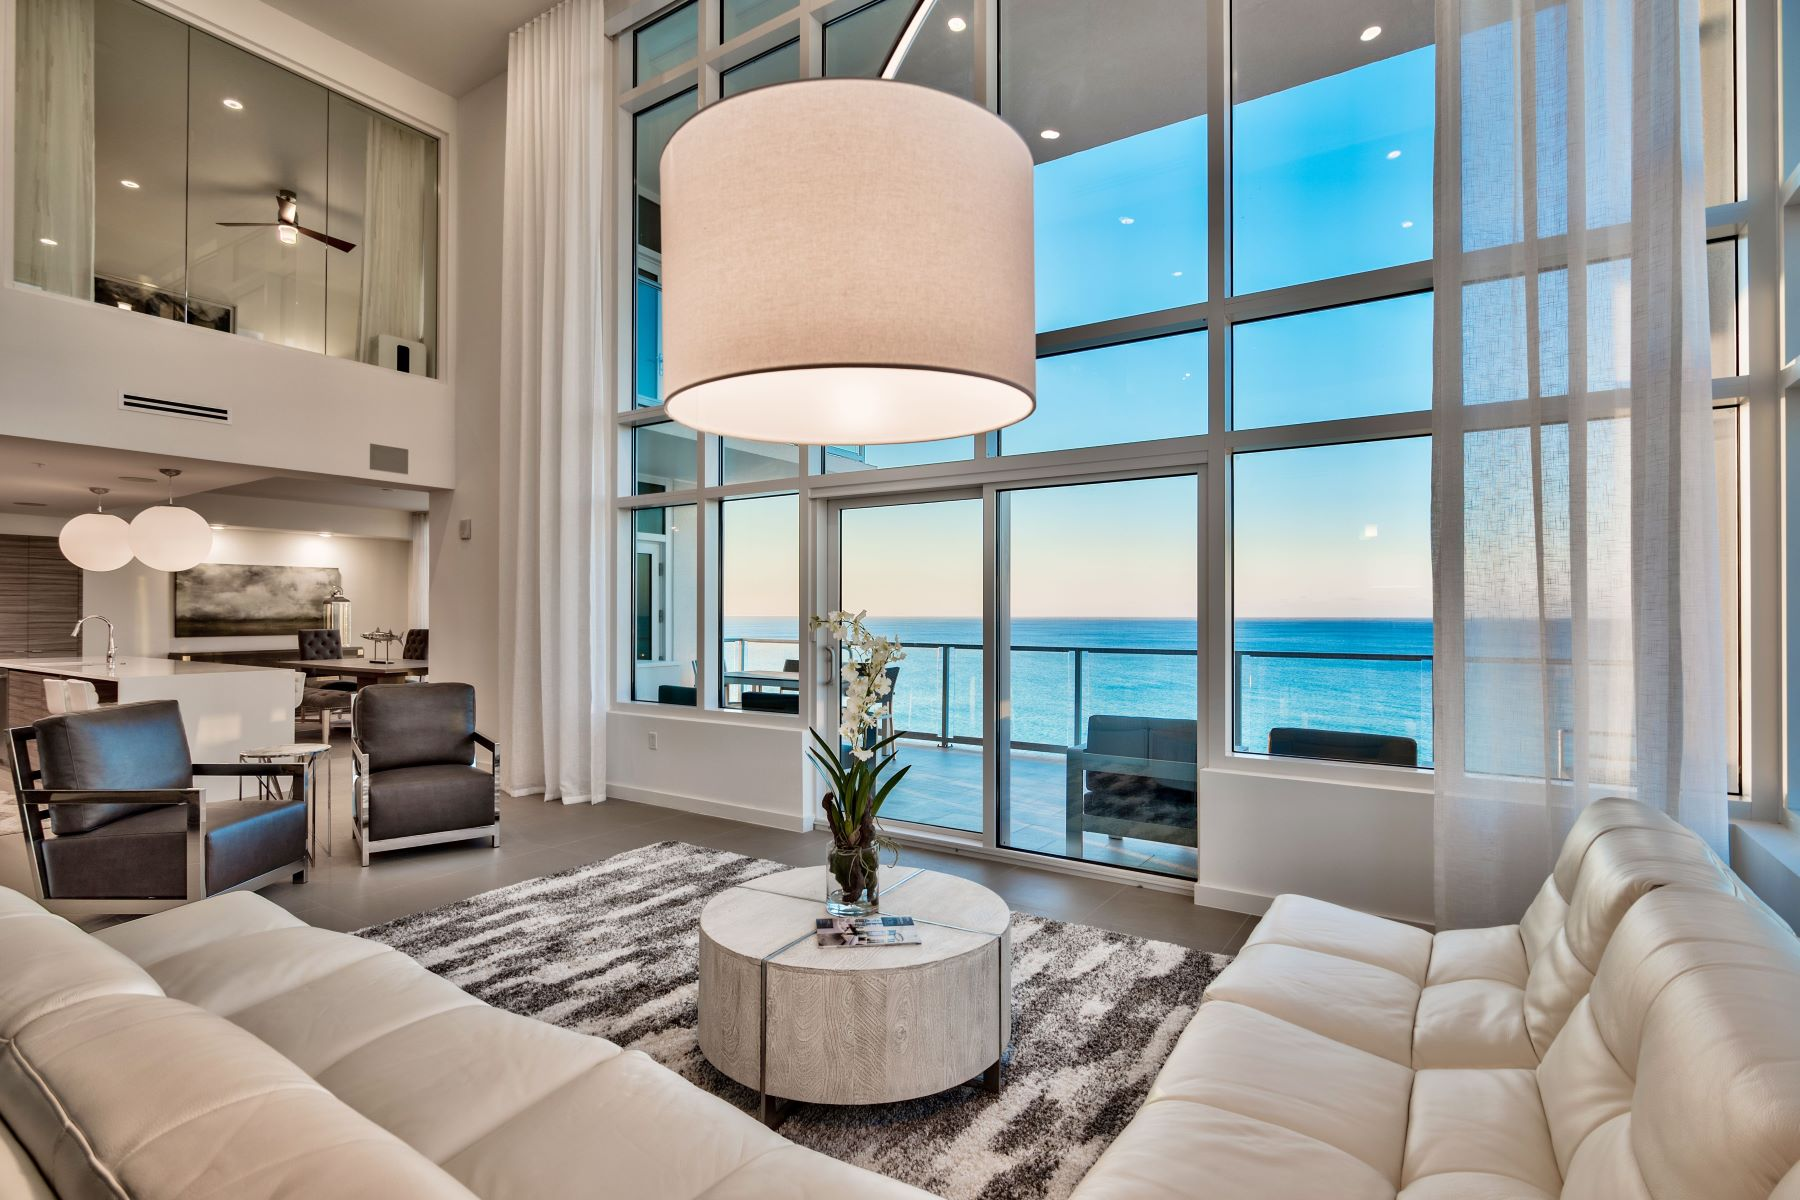 Condominiums for Sale at Gulf-Front Penthouse In Destin With Private Pool and Amenities 1900 Scenic Highway 98 1002 Destin, Florida 32541 United States